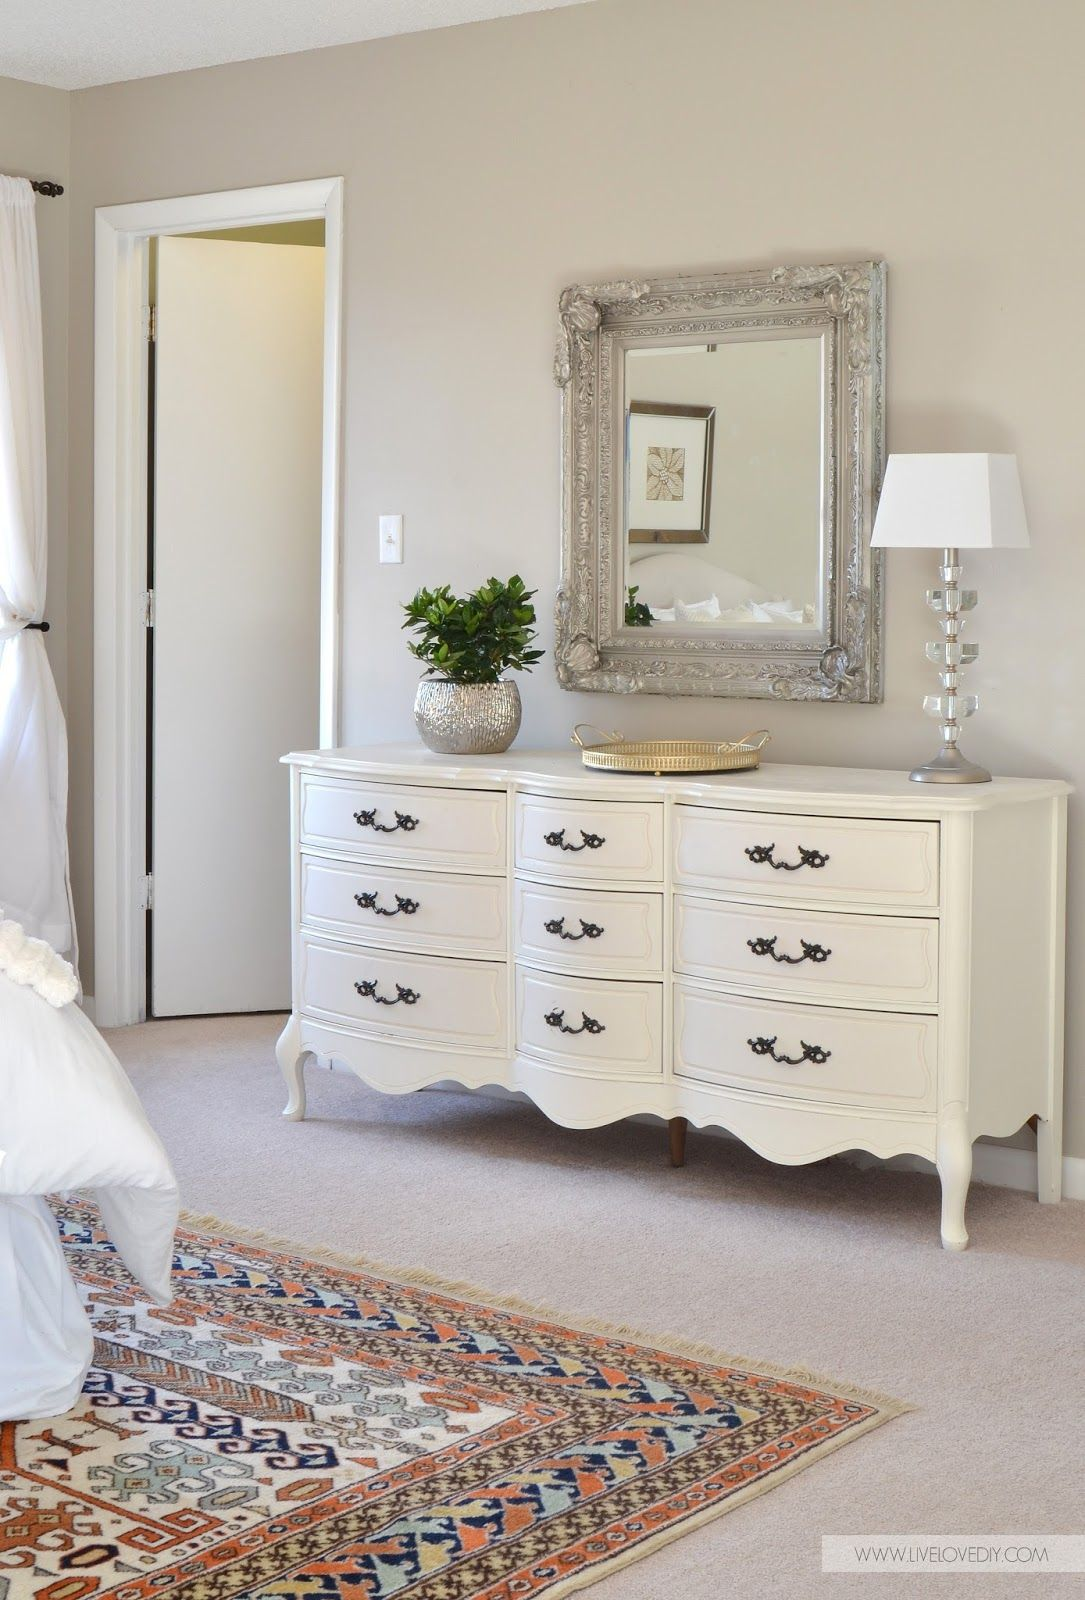 12 simple ways to update your master bedroom | diy decorating and